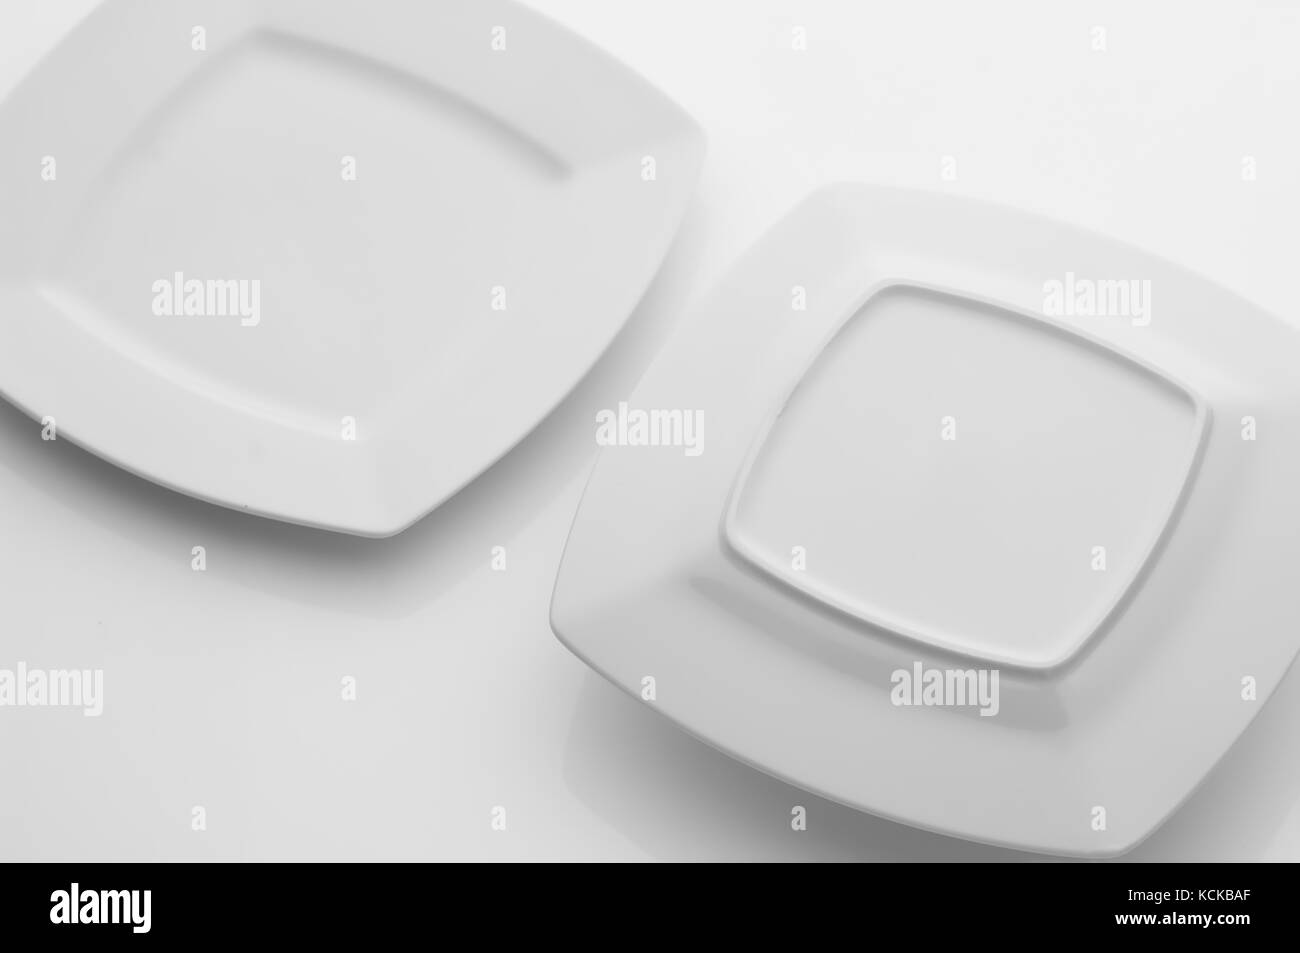 kitchen and restaurant utensils, plates, on a light background - Stock Image